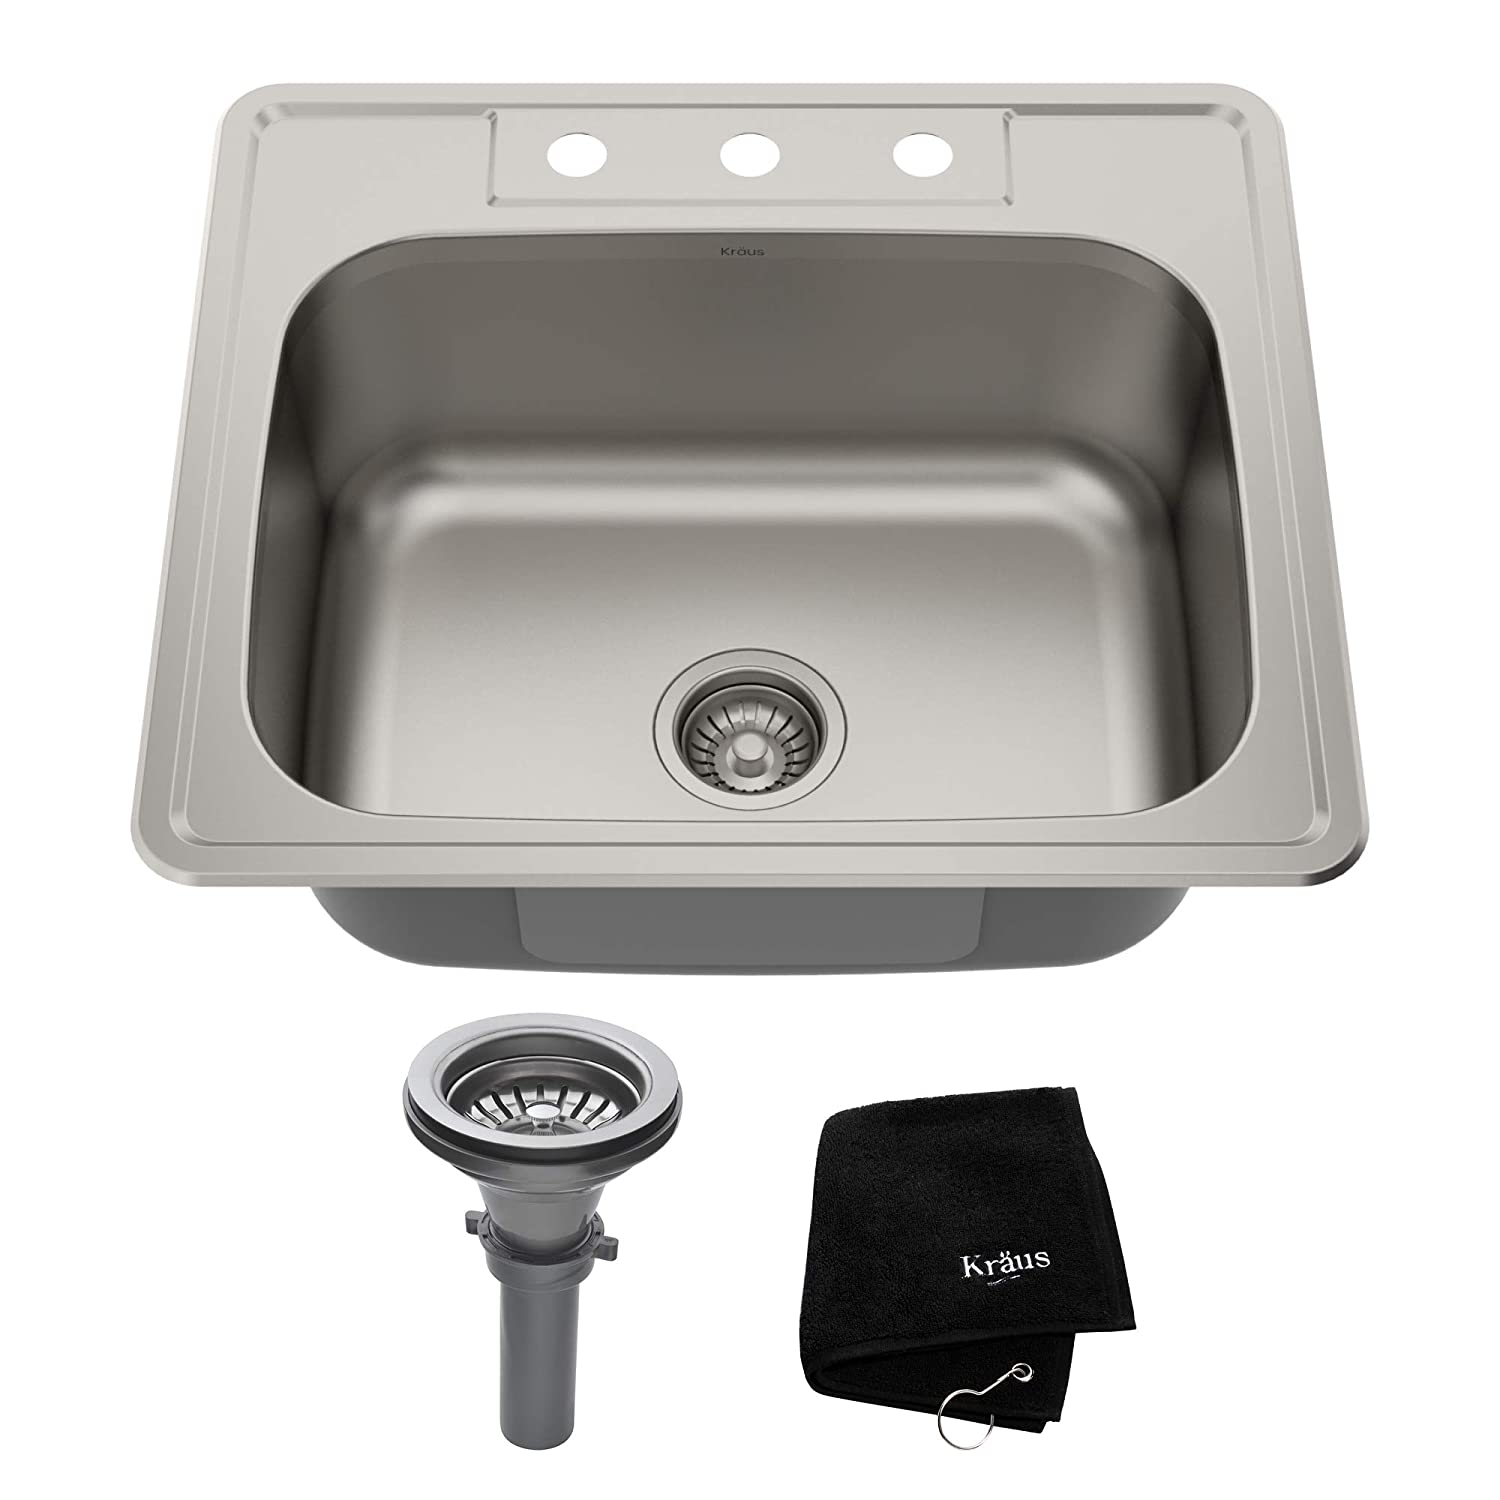 Kraus KTM25 25 inch Topmount Single Bowl 18 gauge Stainless Steel Kitchen Sink